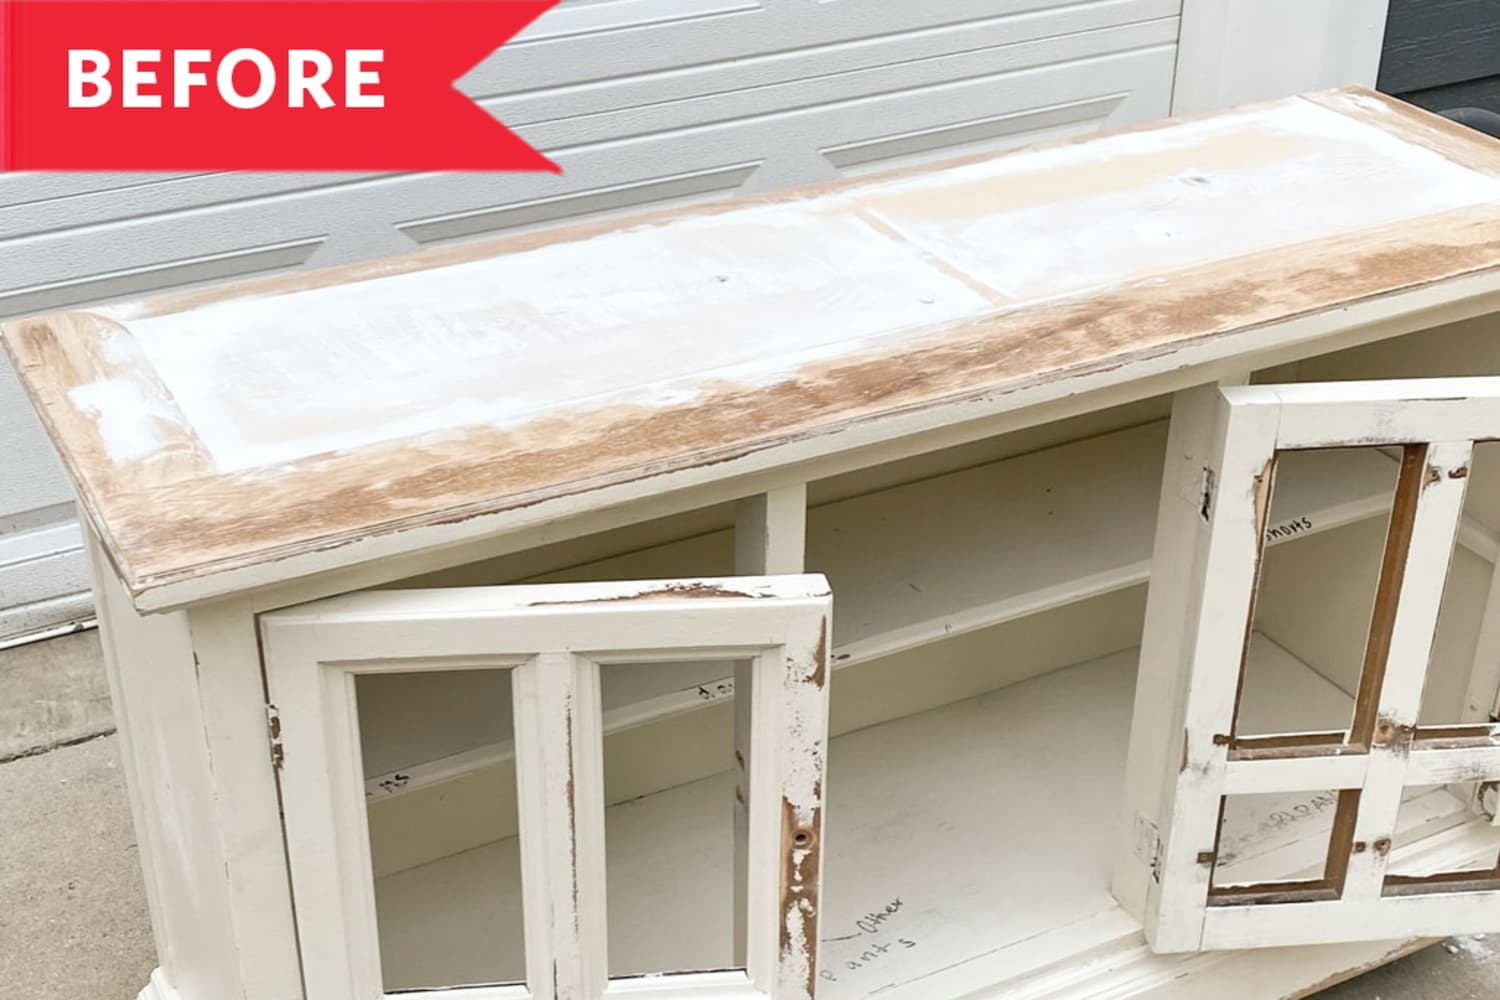 Before and After: An Antique Hutch Becomes Two Brand-New Pieces of Furniture in a Brilliant $100 Redo